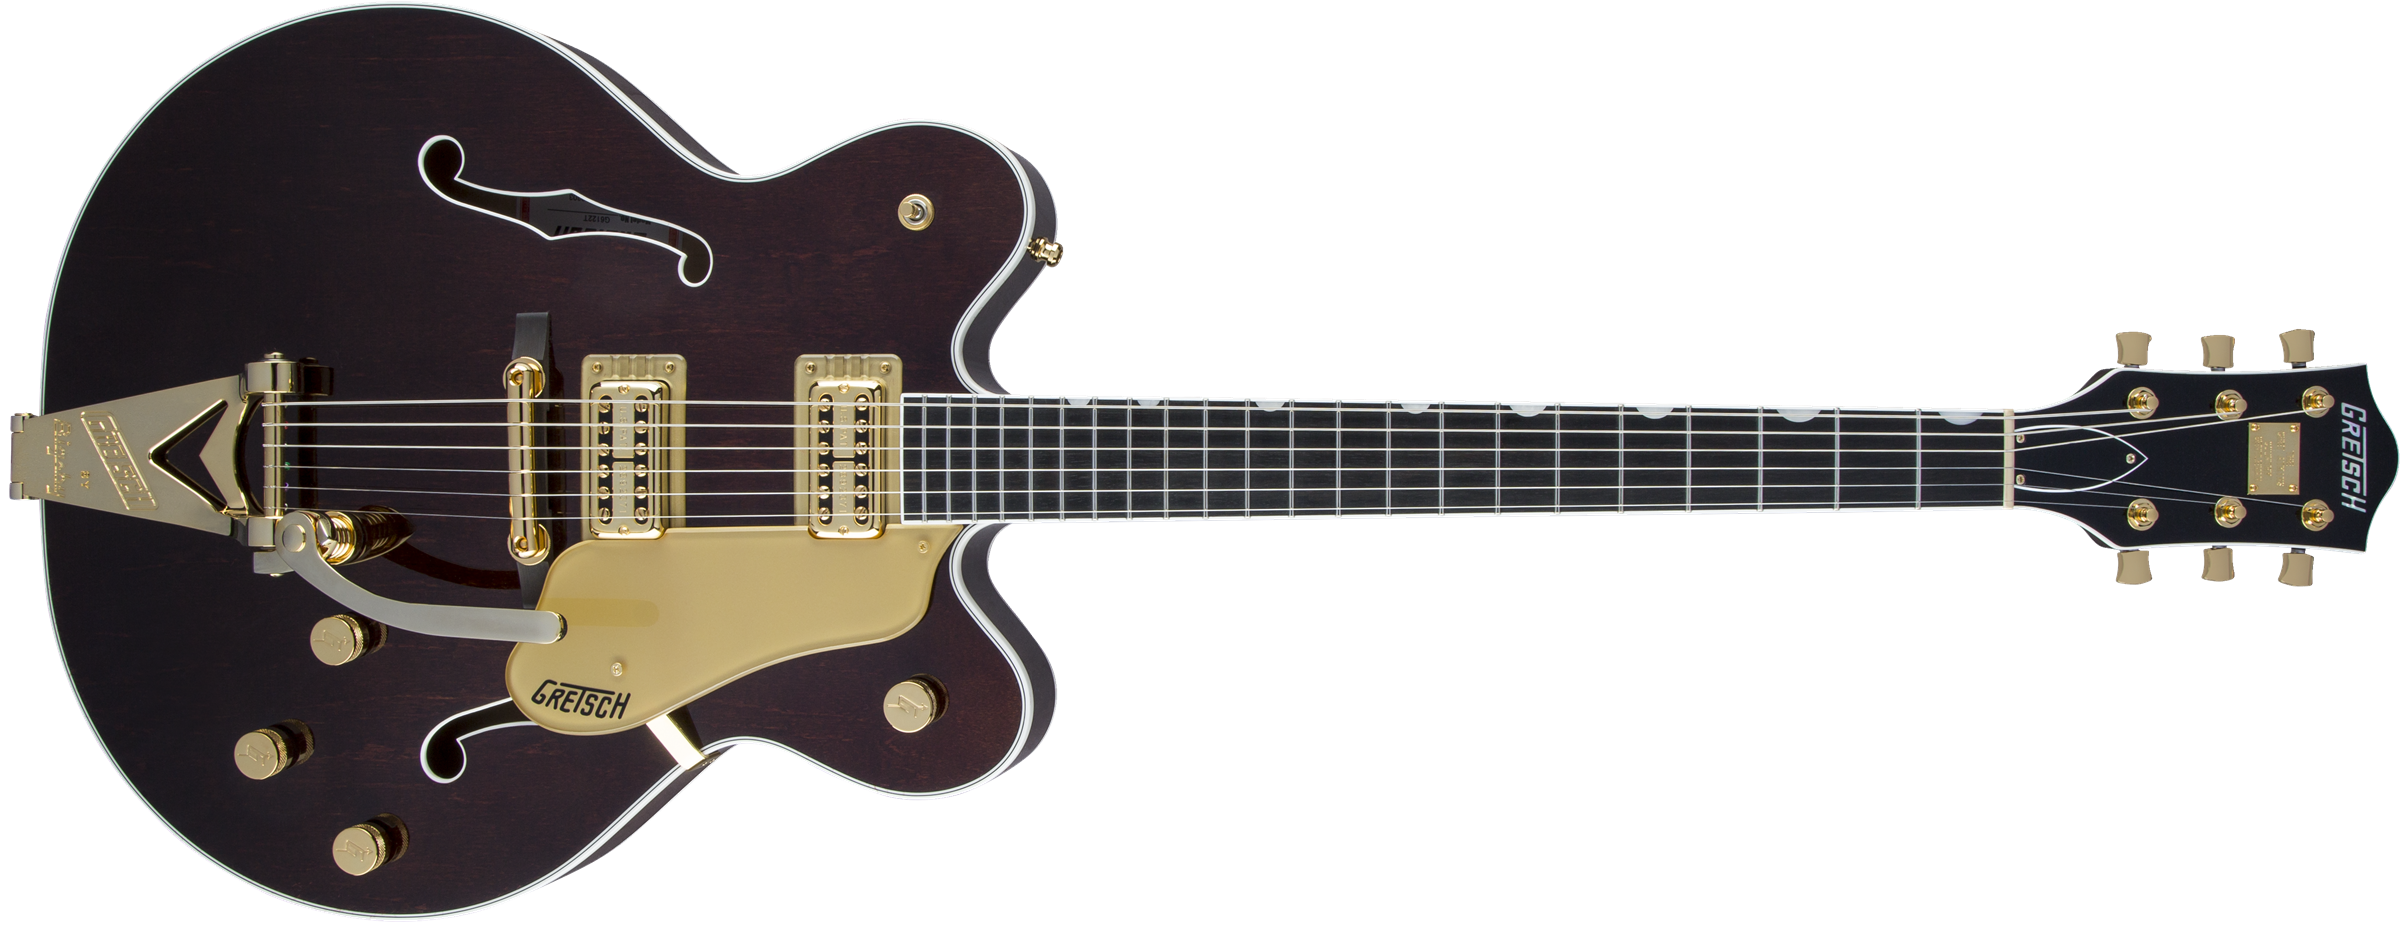 Country guitar png. Hollow body g t